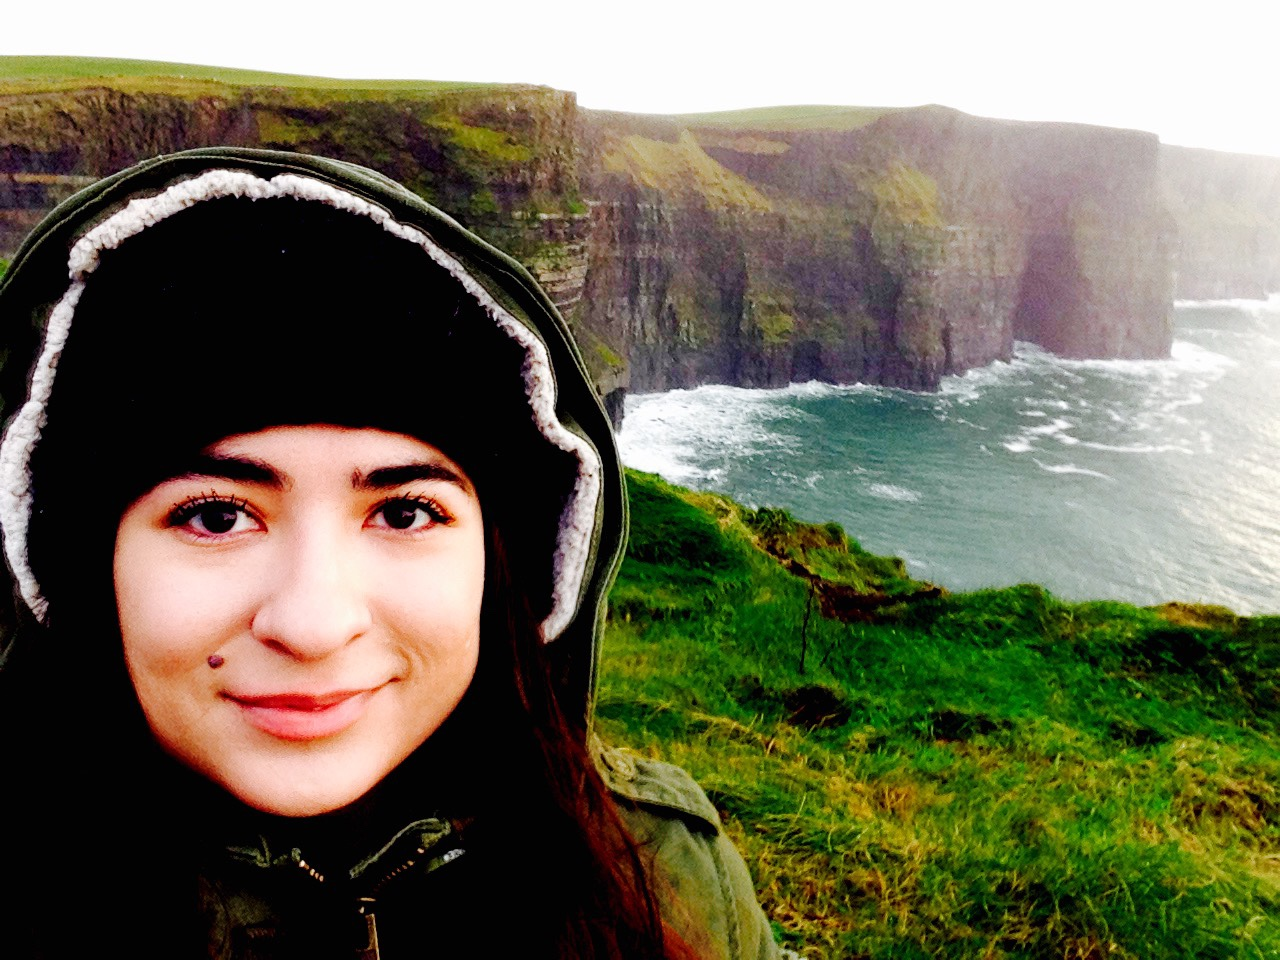 Study Abroad participant on the coast of Ireland